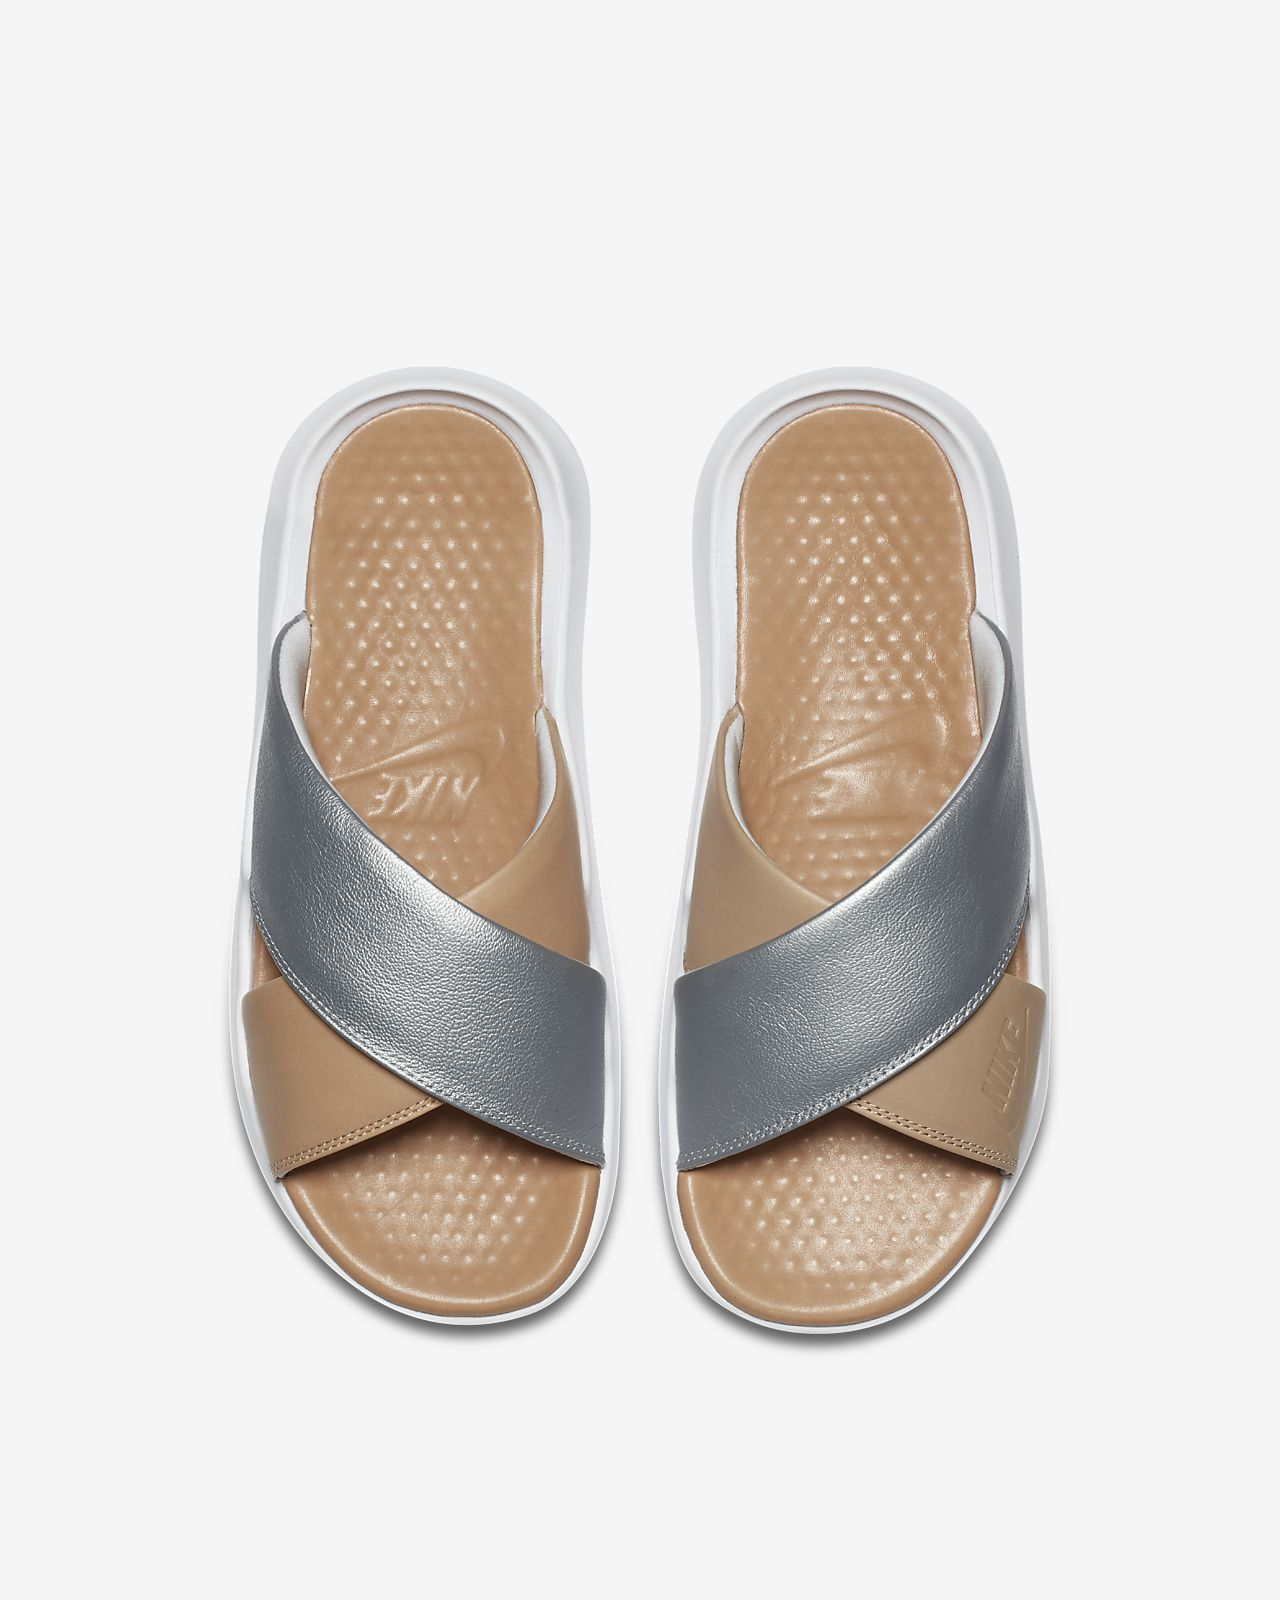 1404aabc4 Nike Benassi Future Cross SE Premium Women s Slide. Nike.com GB